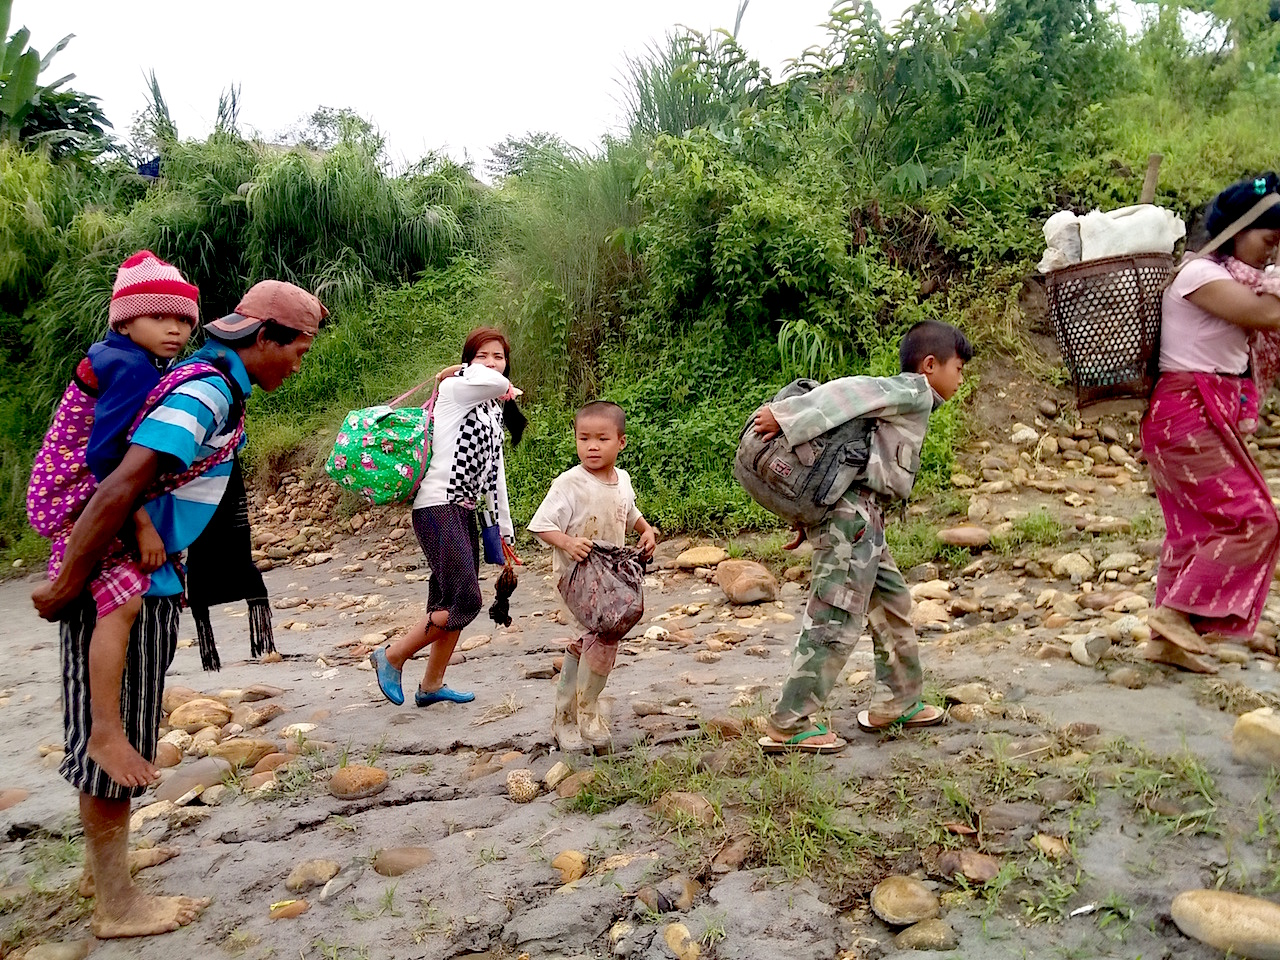 Civilians in Kachin state fled their village of Lawt Kawng during flighting between the Myanmar military and the Kachin Independence Army on 22 July 2015